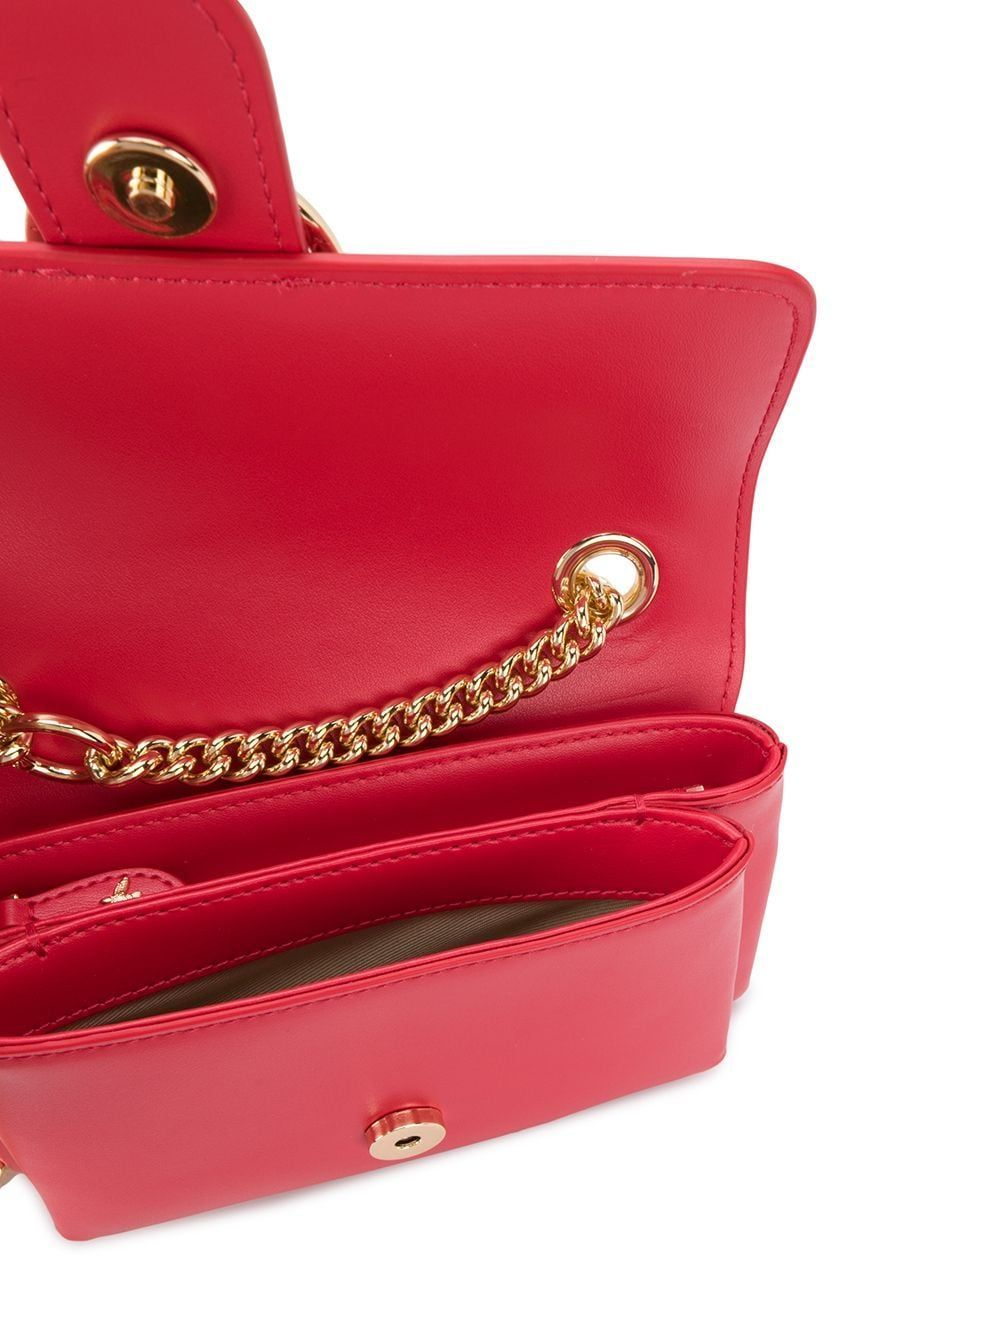 PINKO WOMEN'S 1P21QQY5FFR24 RED LEATHER SHOULDER BAG